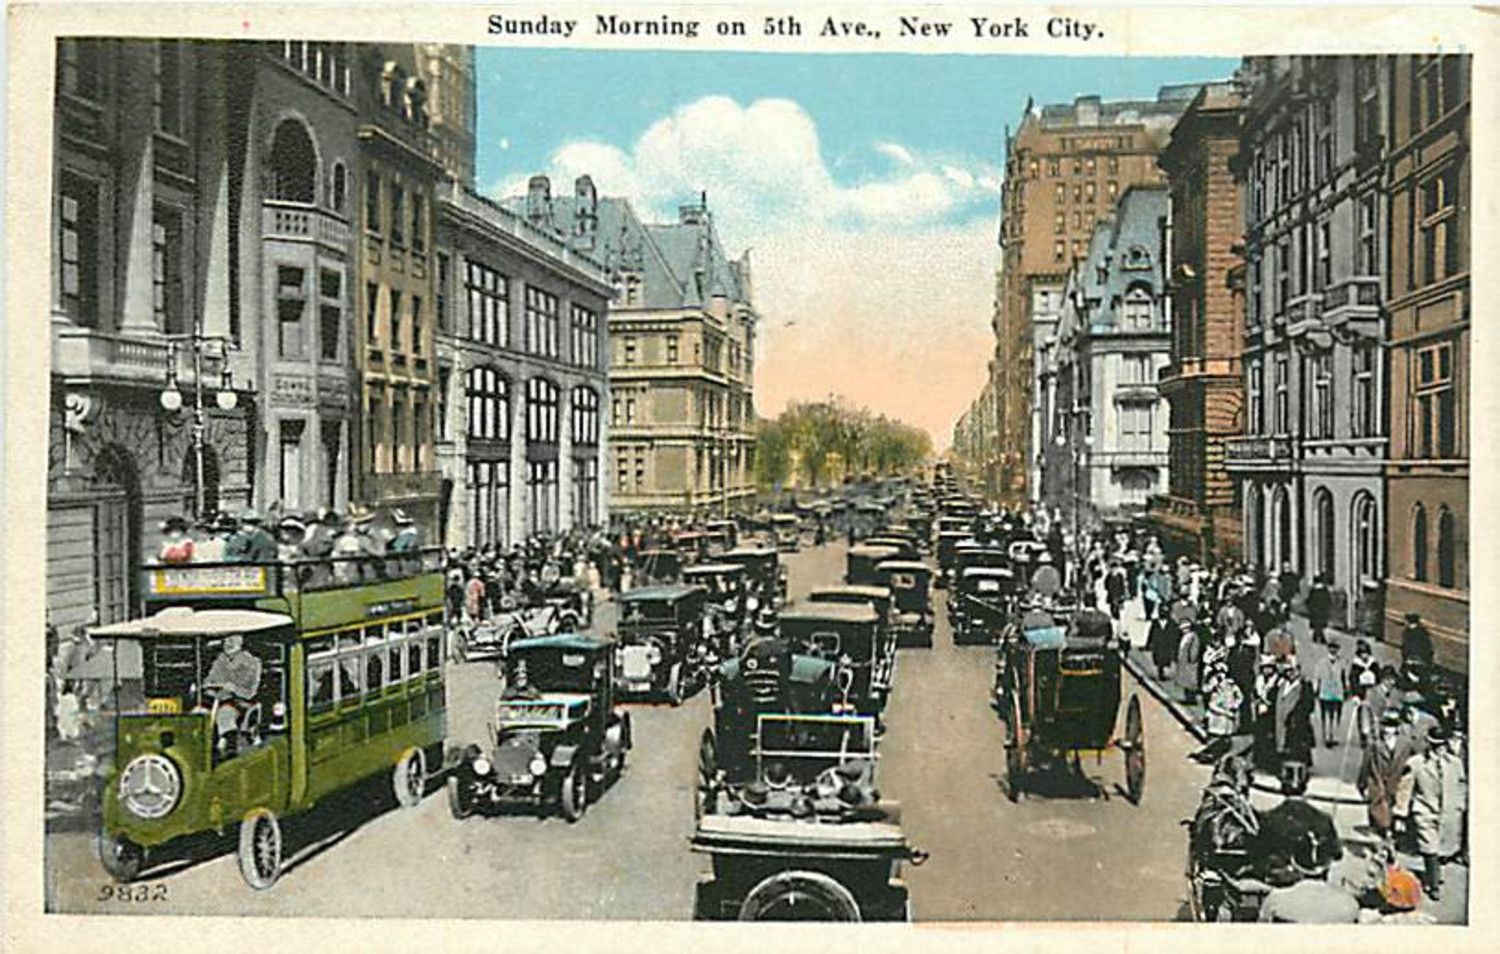 "From this 1920 postcard we see Fifth Avenue looking north from 56th Street on a busy Sunday morning. With the exception of one horse drawn carriage going north in the foreground all the other vehicular traffic is motorized. The large private house on the left just before Central Park is the monumental home of Cornelius Vanderbilt II, taking up the block between 57th and 58th Streets. This ""chateau"" was demolished in 1926 and luxury department store, Bergdorf Goodman was built on the site."